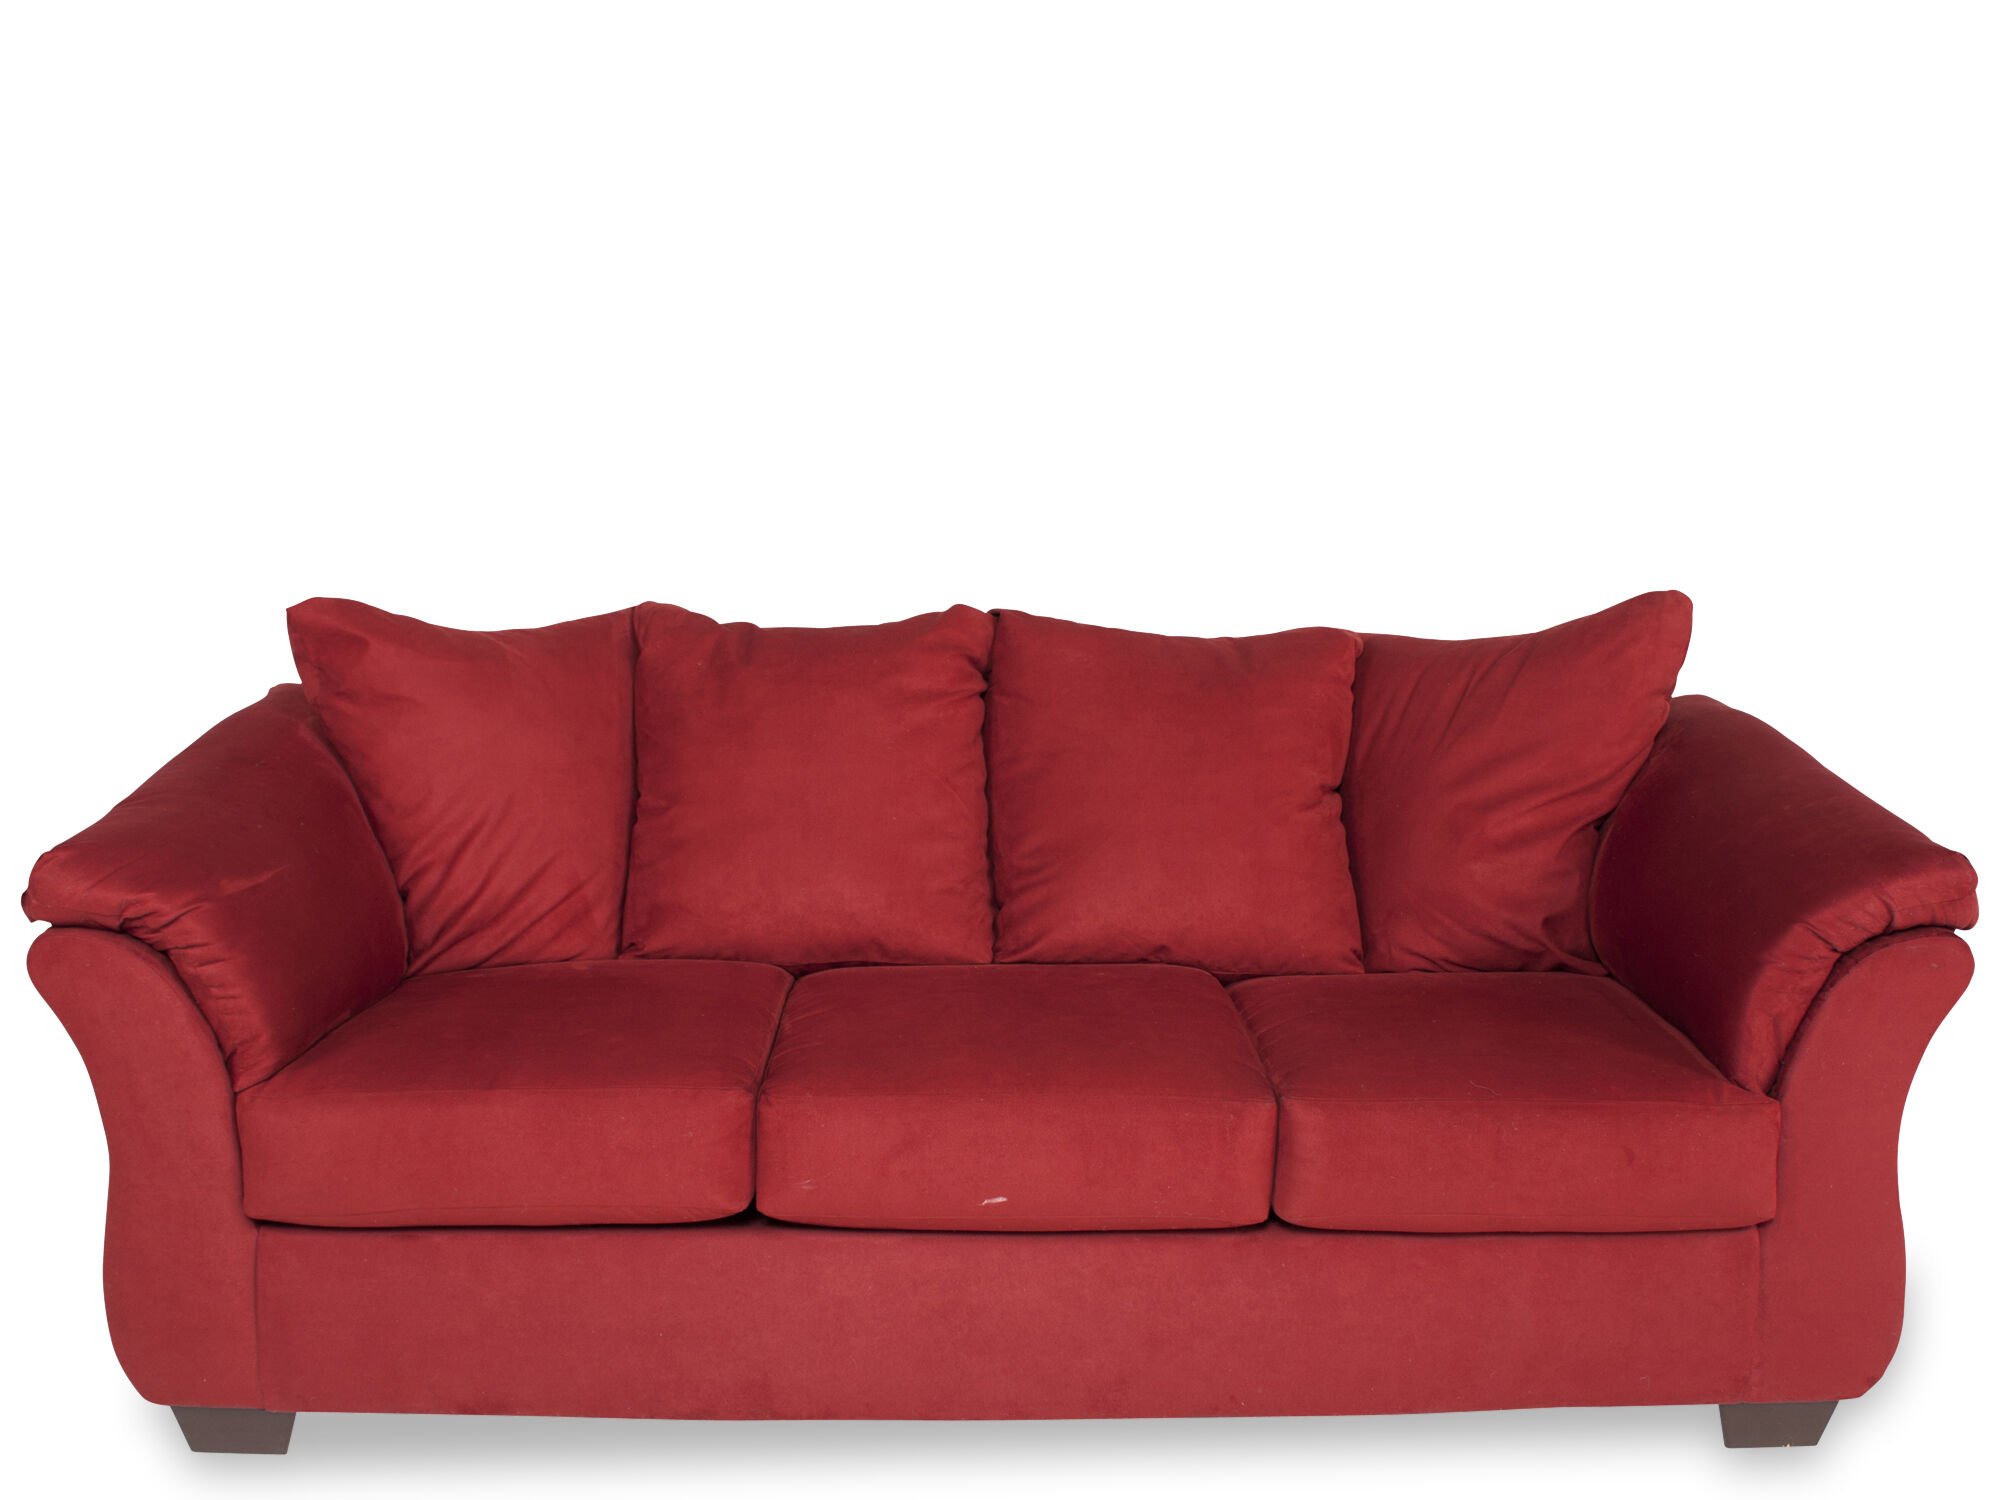 Contemporary LowProfile 90 Sofa in Red Mathis Brothers Furniture